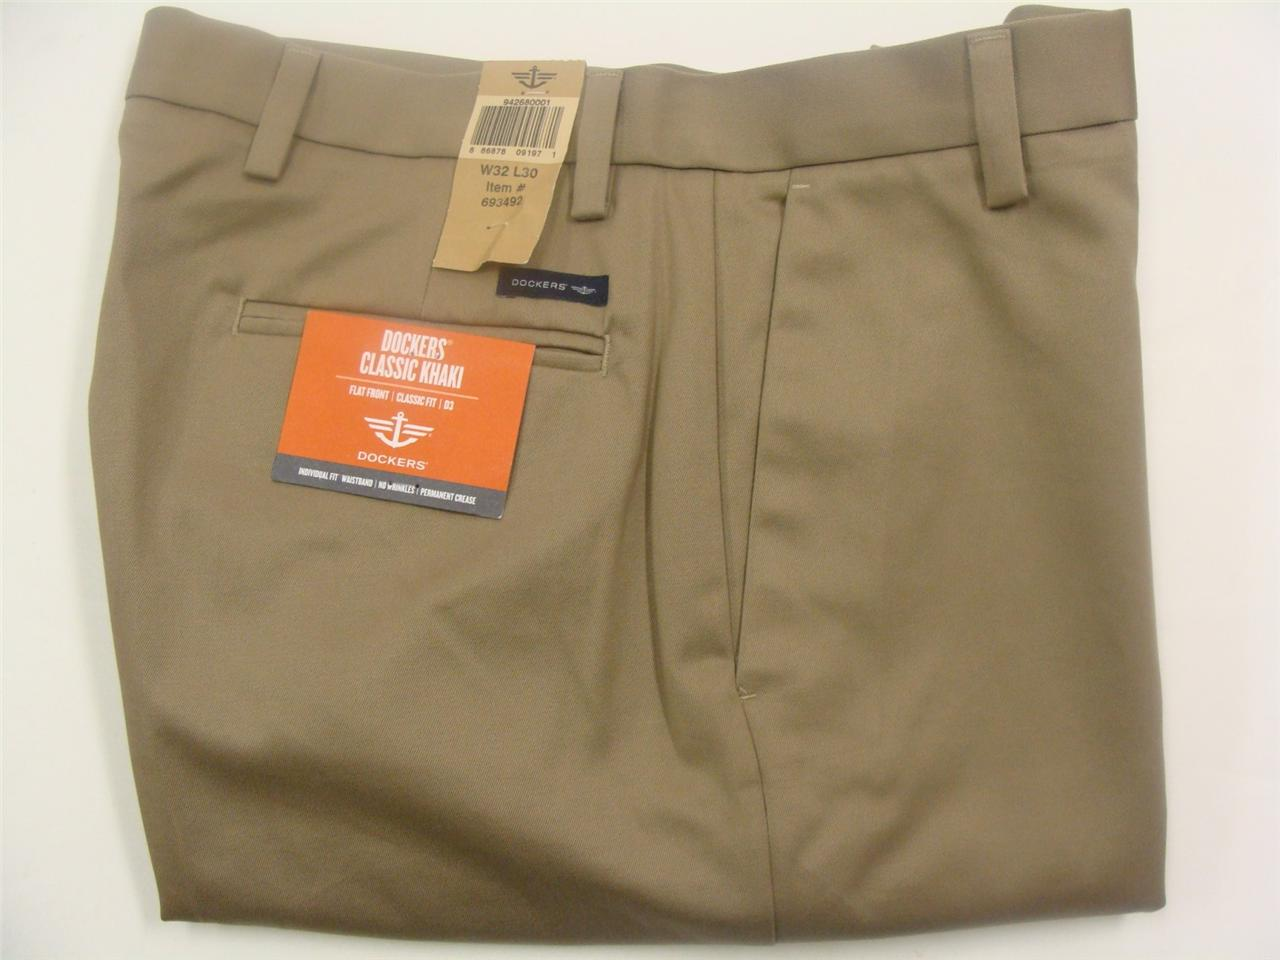 Shop Now For Dockers Pants| Bob's Stores. Share the Love with a Bob's Stores® Gift Card.